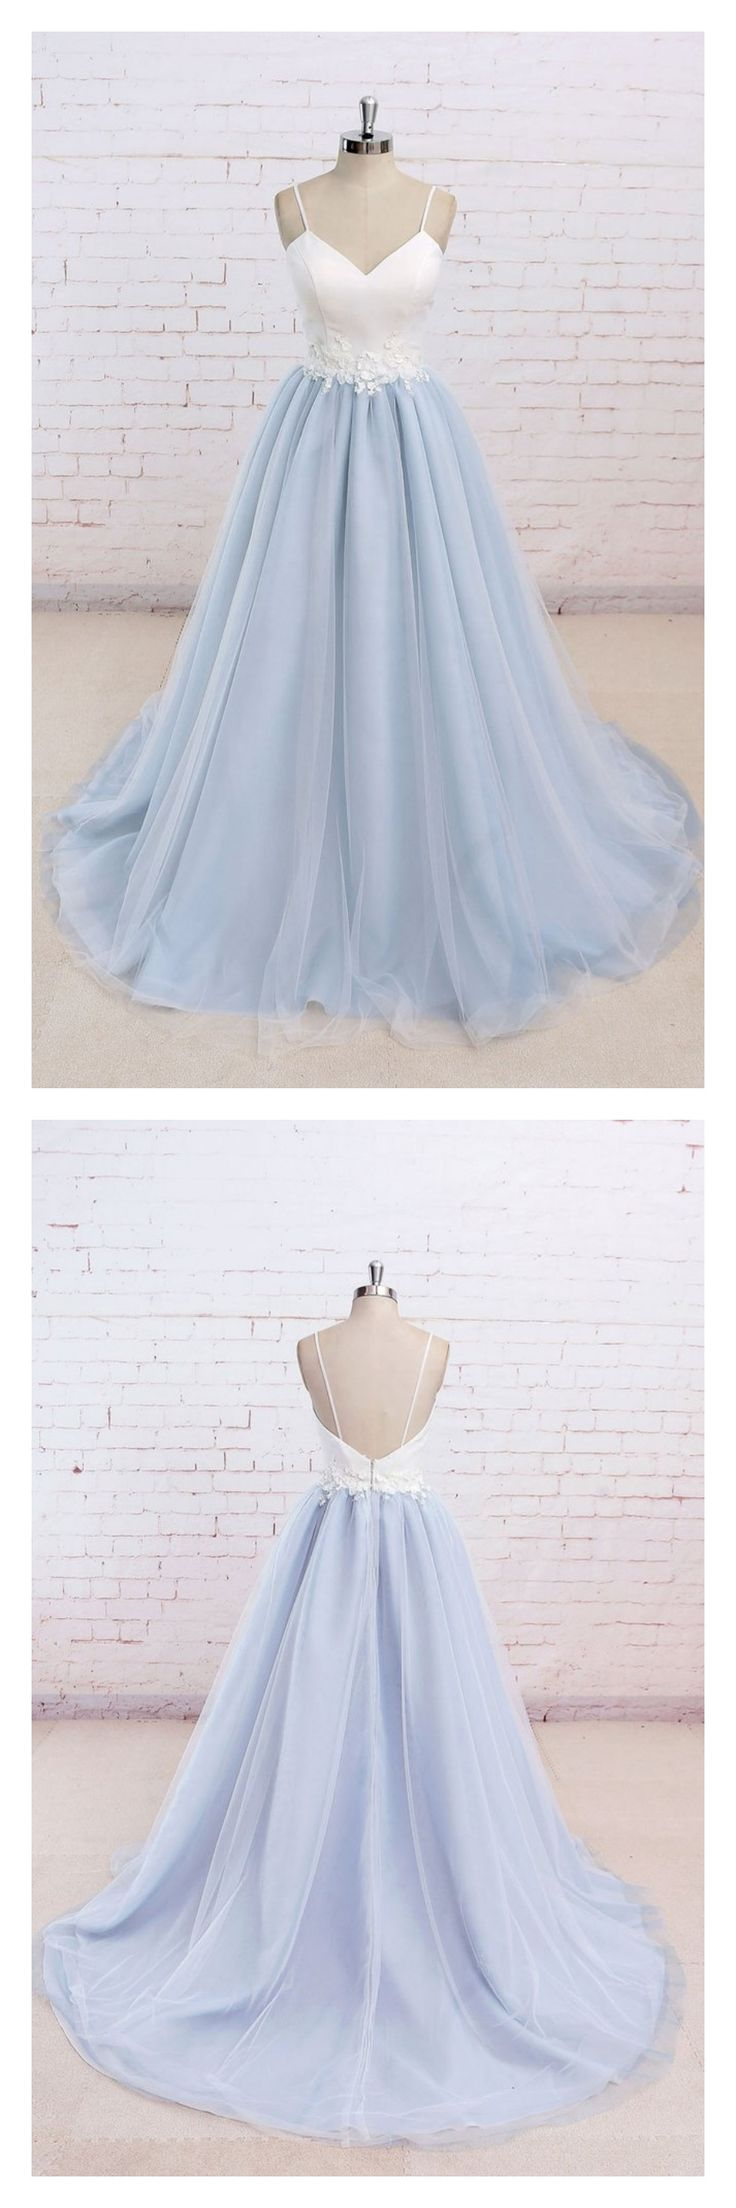 long prom dresses, spaghetti straps long prom dresses, a line prom dresses, sky blue prom dresses, evening dresses, prom ball gown #fashionpromdresses #fashion #love